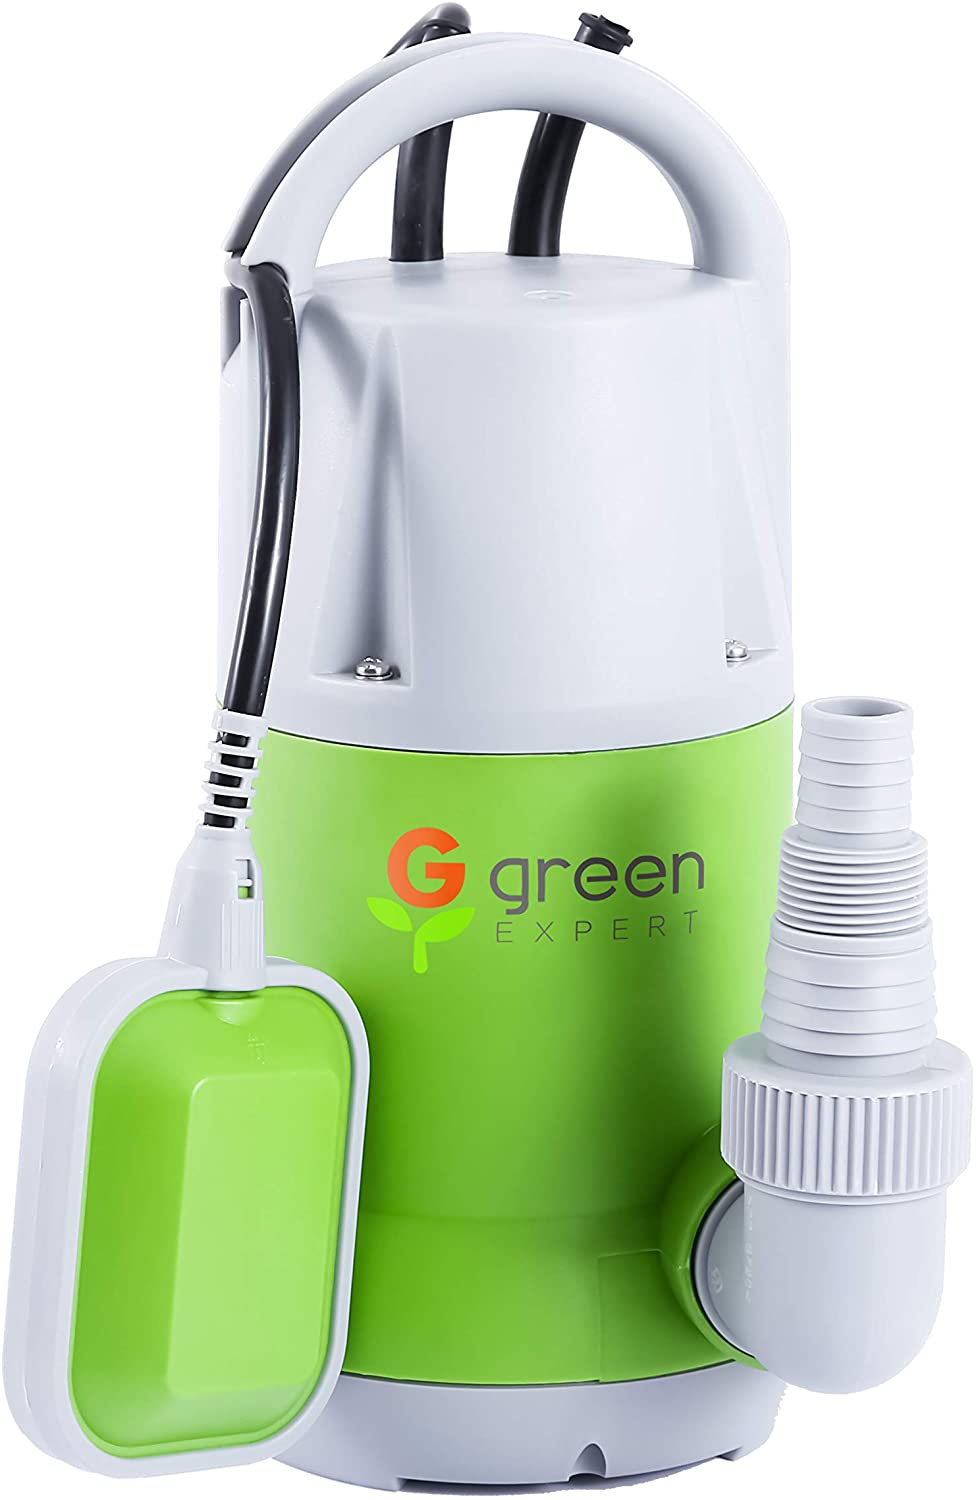 【USA Stock】Green Expert 3/4HP Submersible Sump Pump Max 3962GPH High Flow with Tethered Float Switch and Portable Integrated Plastic Handle for Water Removal Heavy Duty Basement Water Transfer